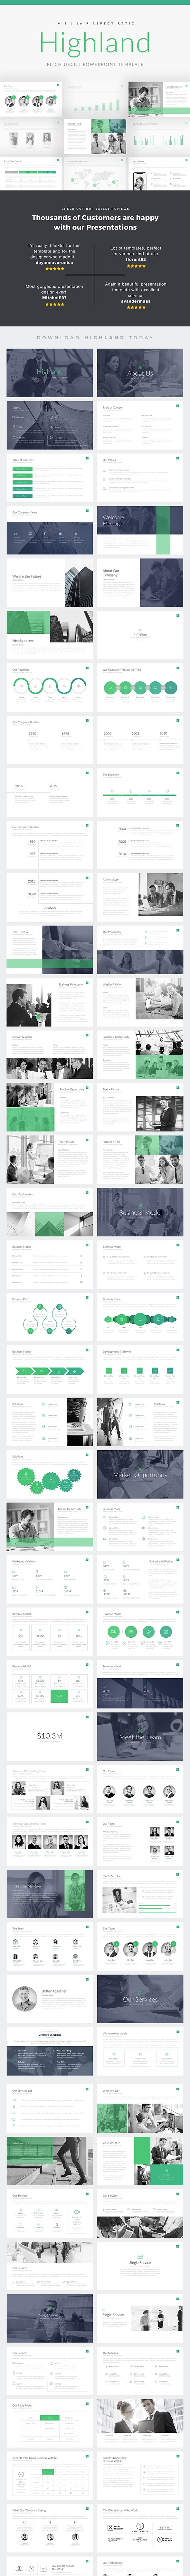 Highland Pitch Deck PowerPoint Template - PowerPoint Templates Presentation Templates